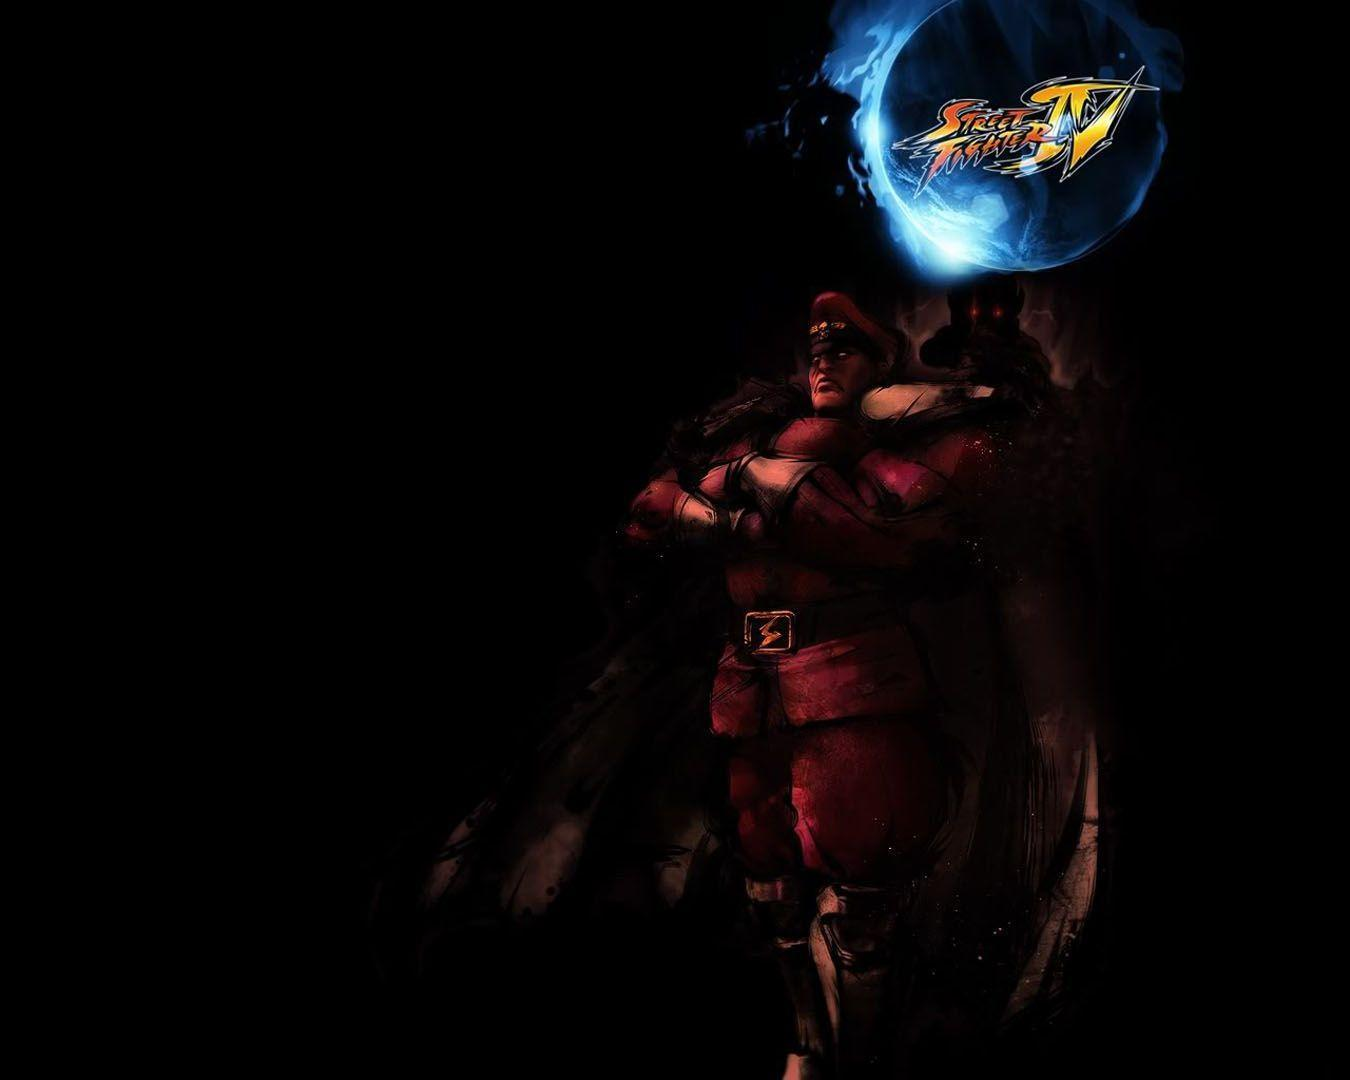 M. Bison Wallpapers - Wallpaper Cave